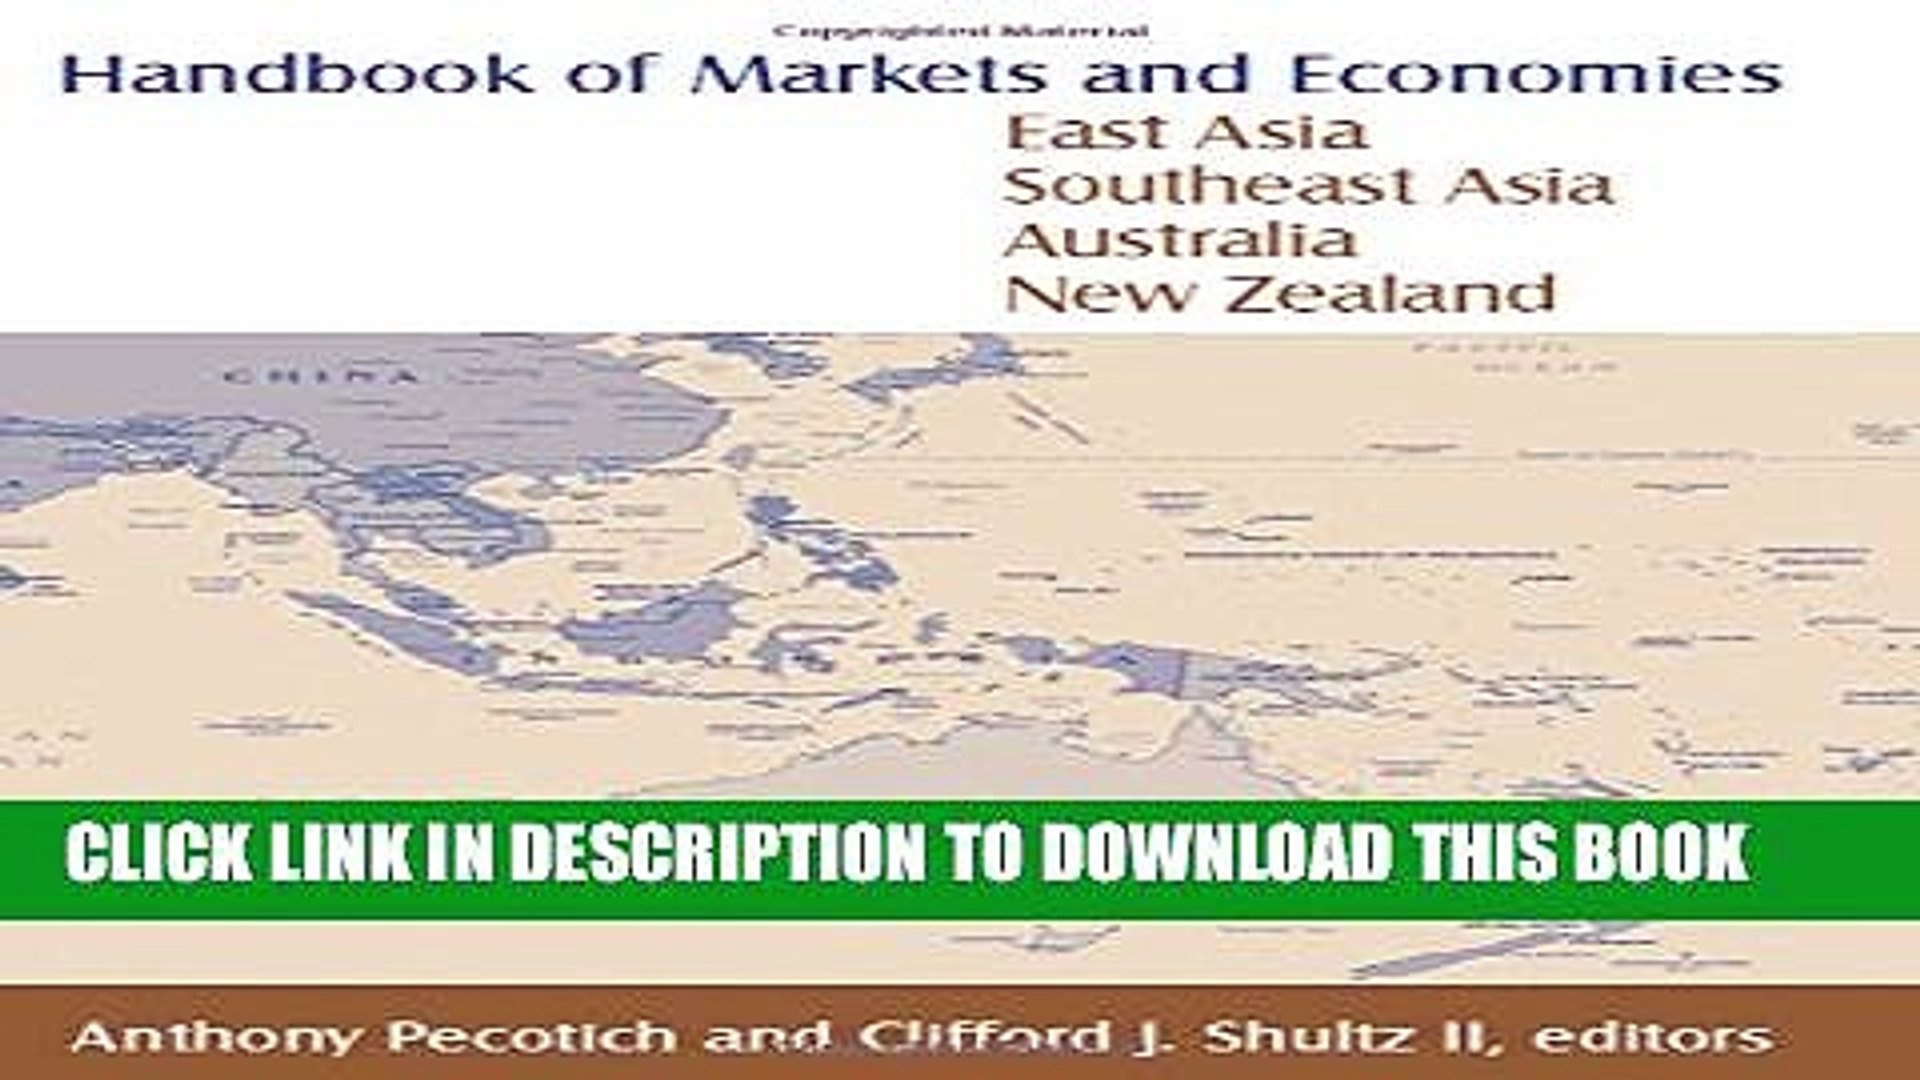 Map Of Southeast Asia Australia And New Zealand.Read Pdf Handbook Of Markets And Economies East Asia Southeast Asia Australia New Zealand